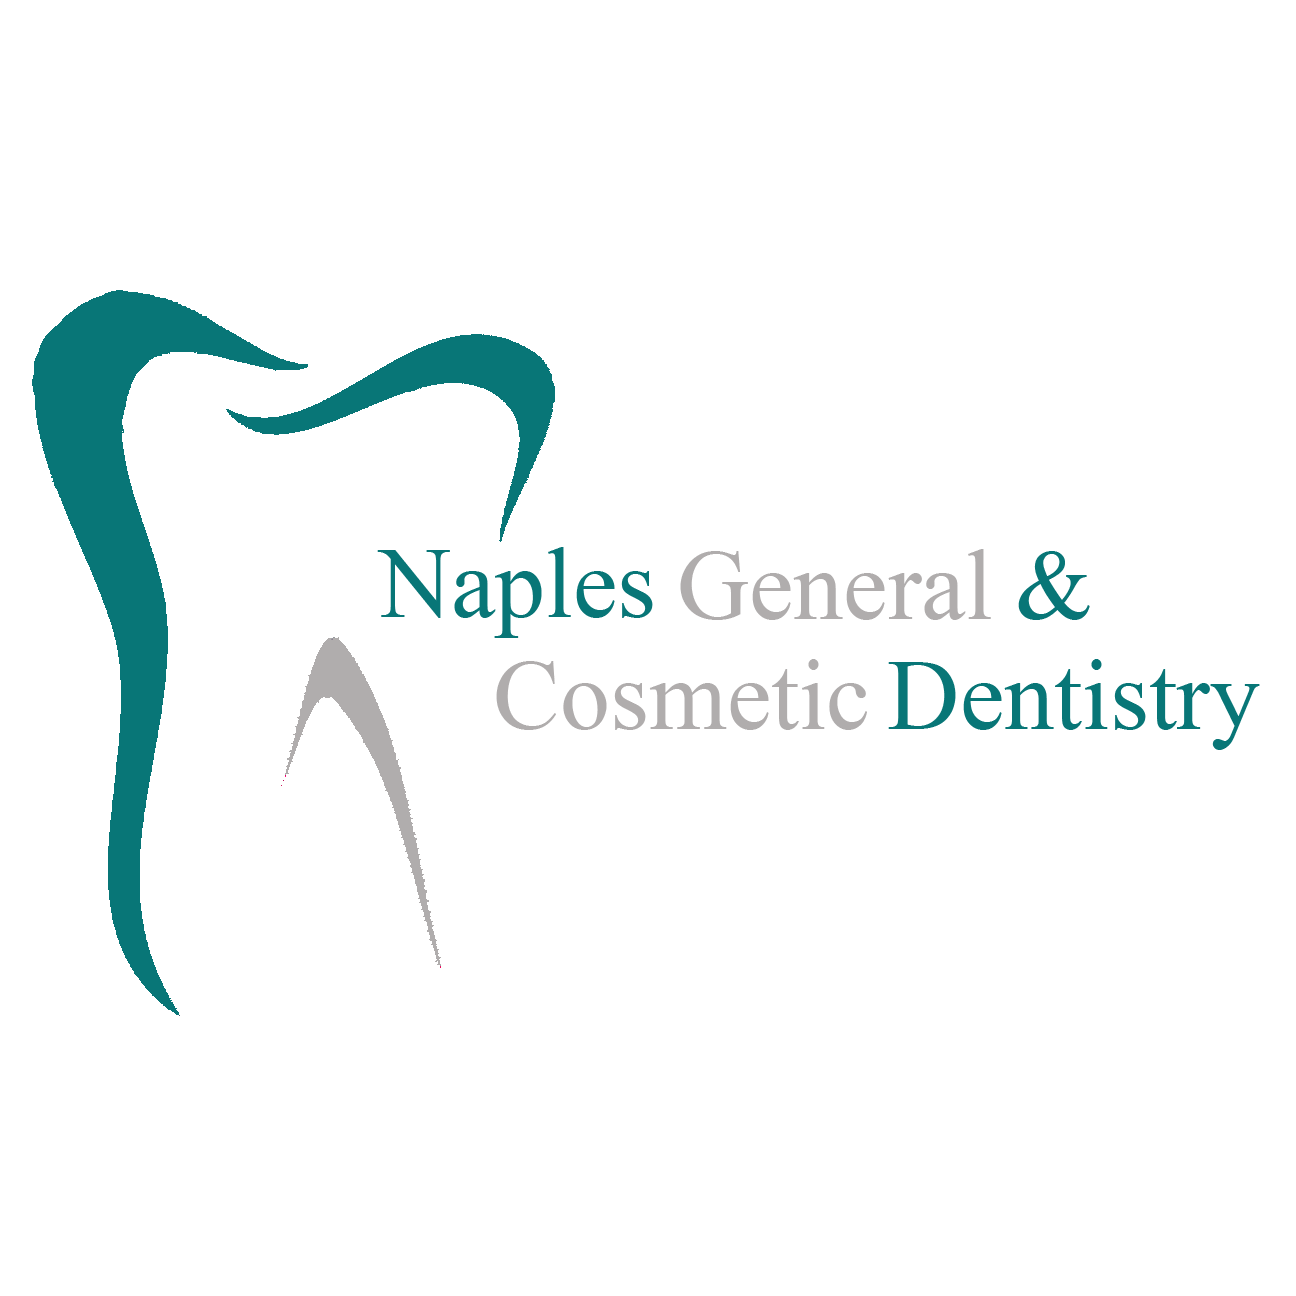 Naples General & Cosmetic Dentistry